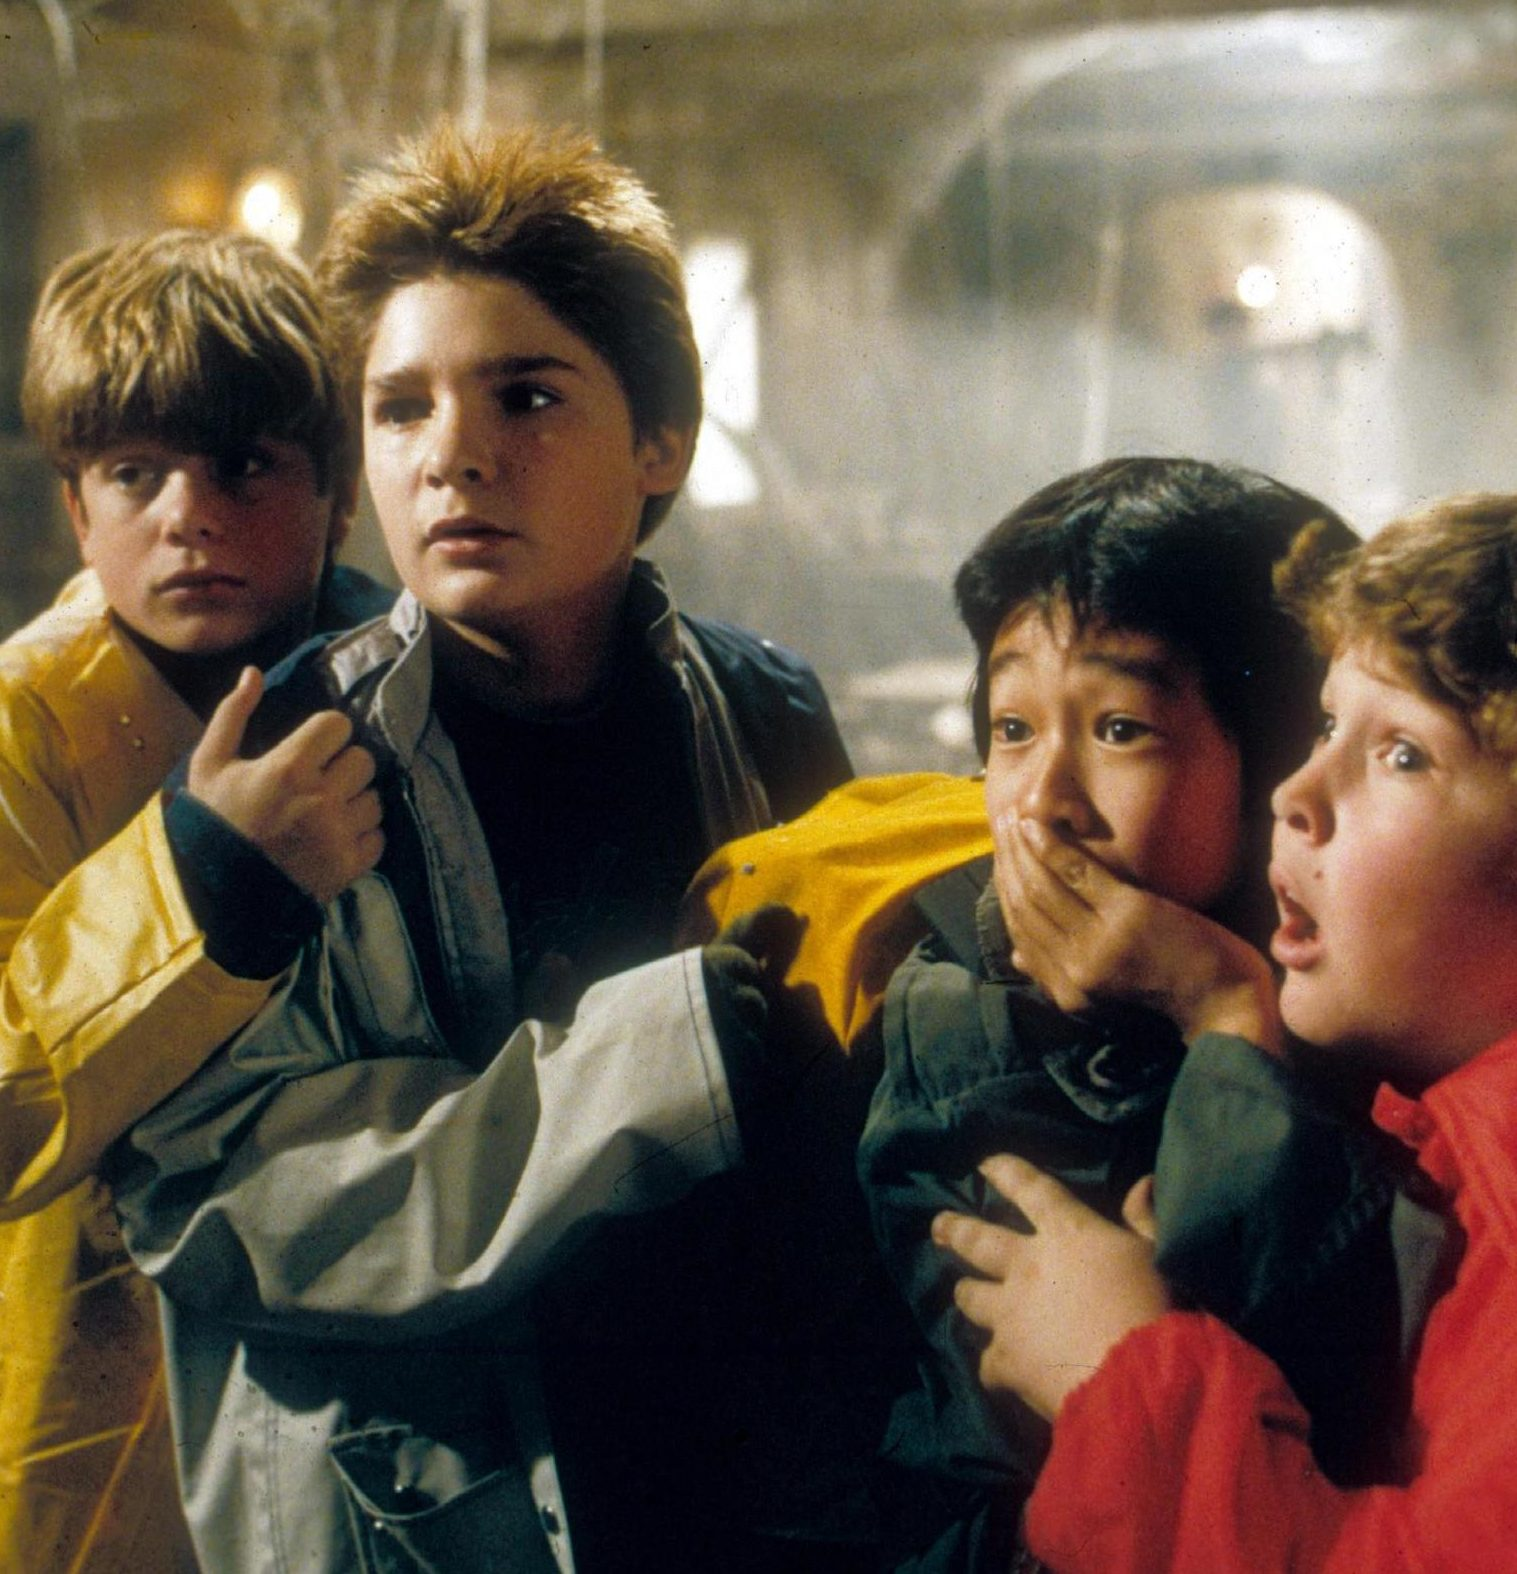 the goonies e1584019309378 20 80s Movie Moments That Have Aged Horribly